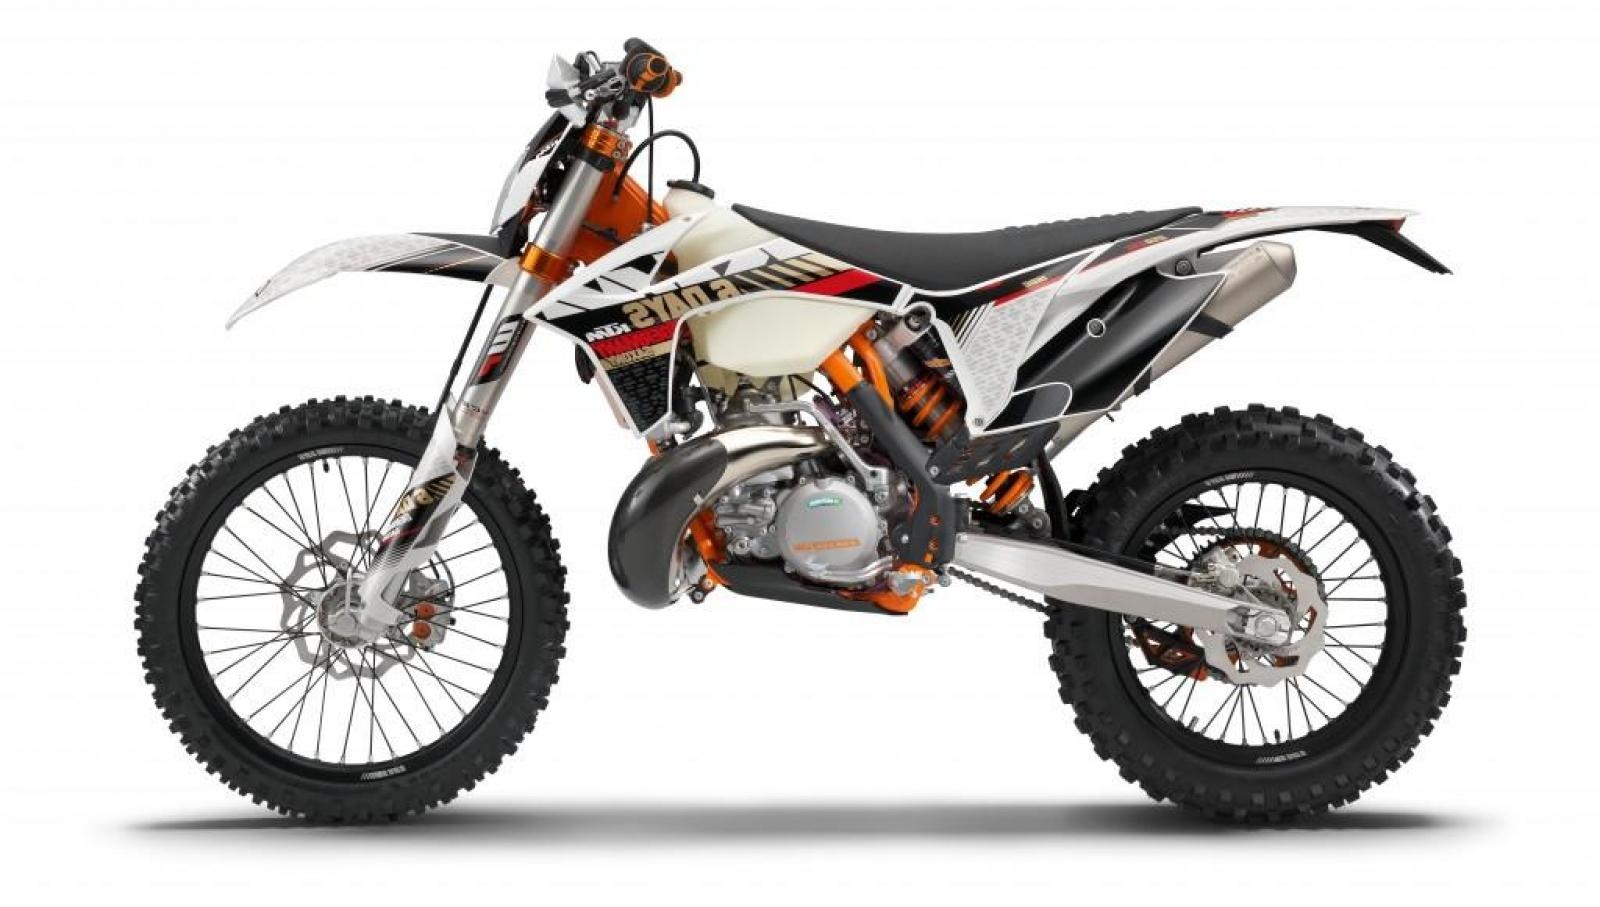 2012 ktm 300 exc six days moto zombdrive com. Black Bedroom Furniture Sets. Home Design Ideas